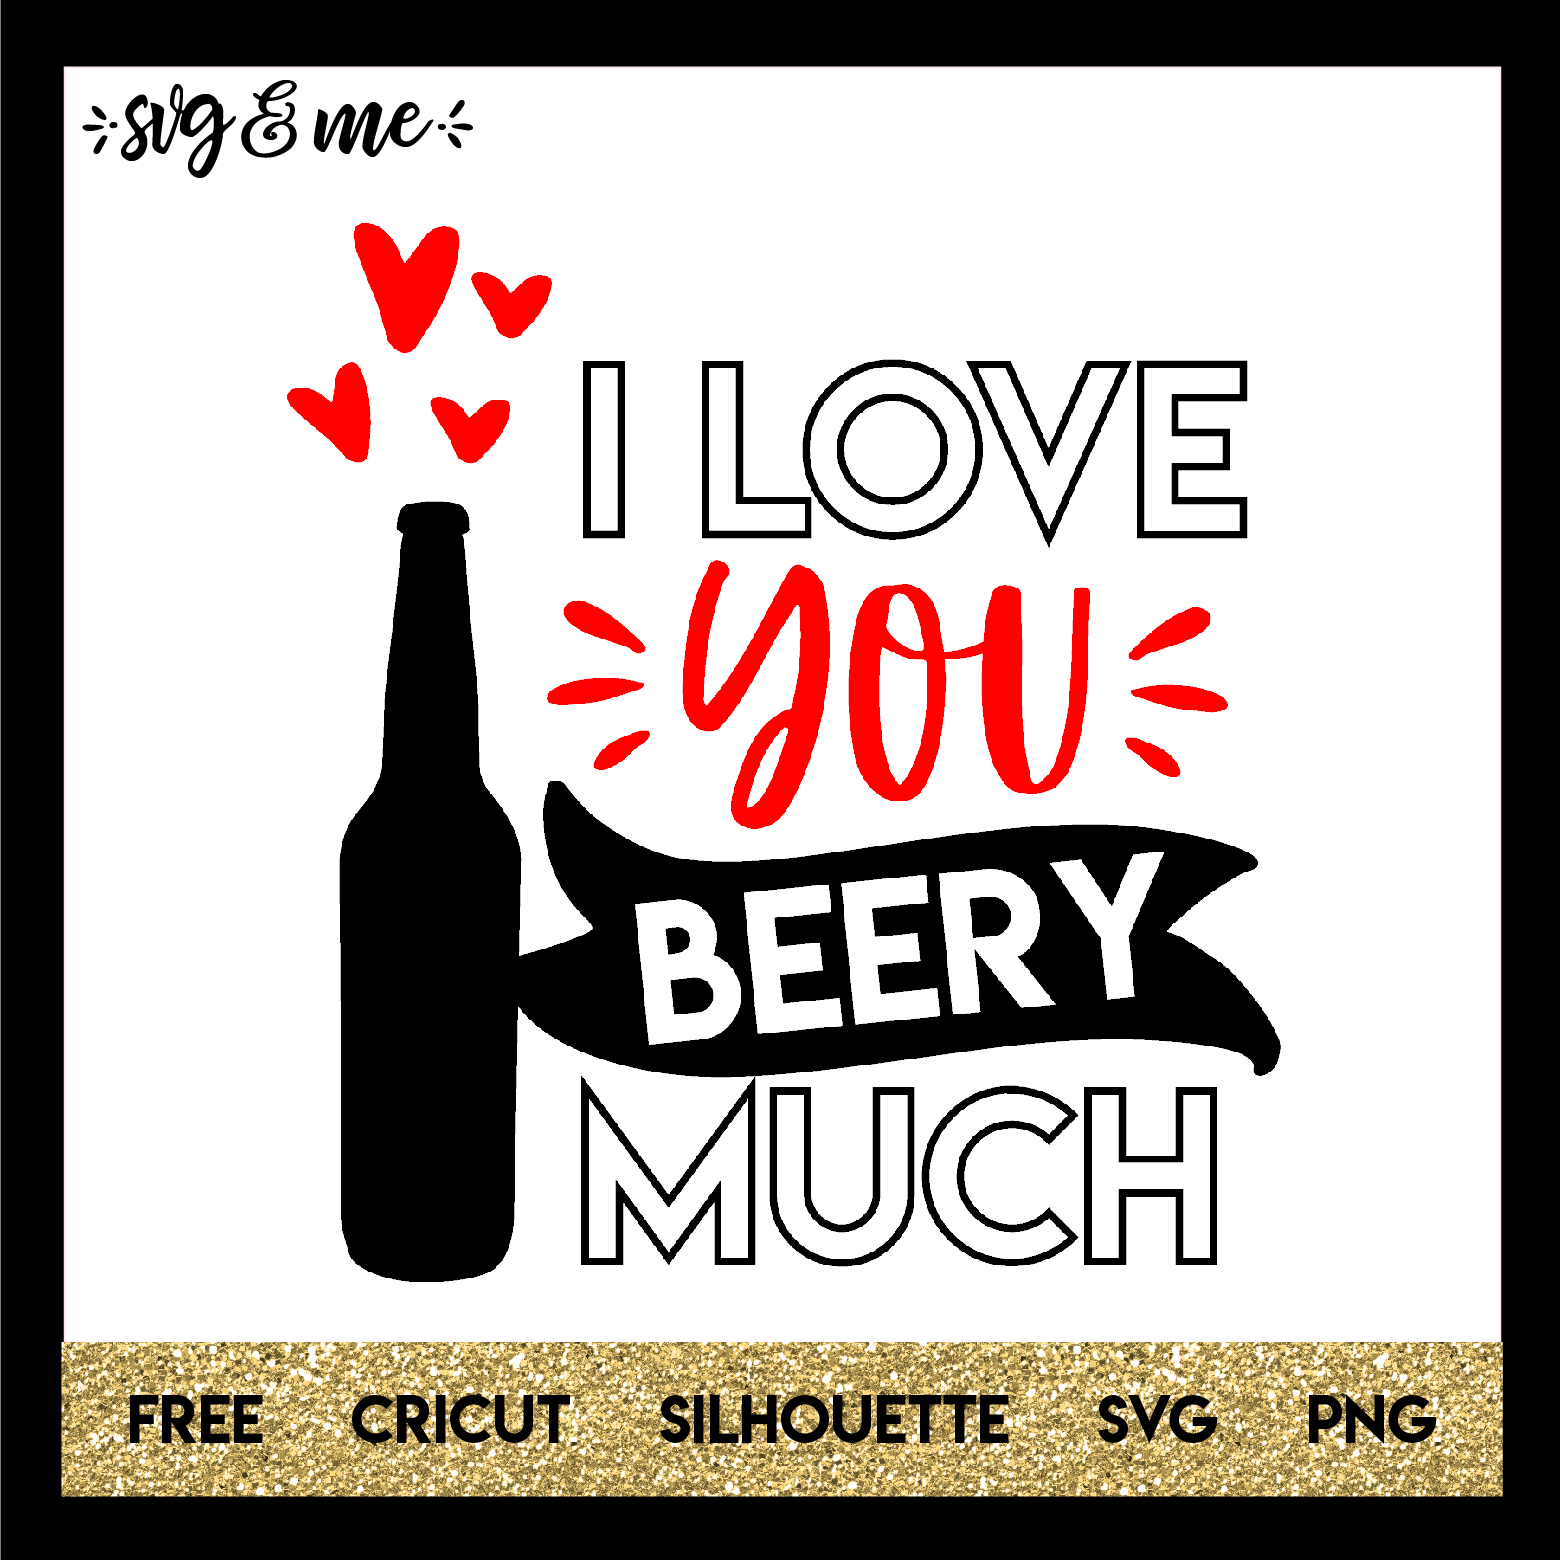 FREE SVG CUT FILE for Cricut and Silhouette DIY Projects - I Love You Beery Much Beer Valentine's SVG